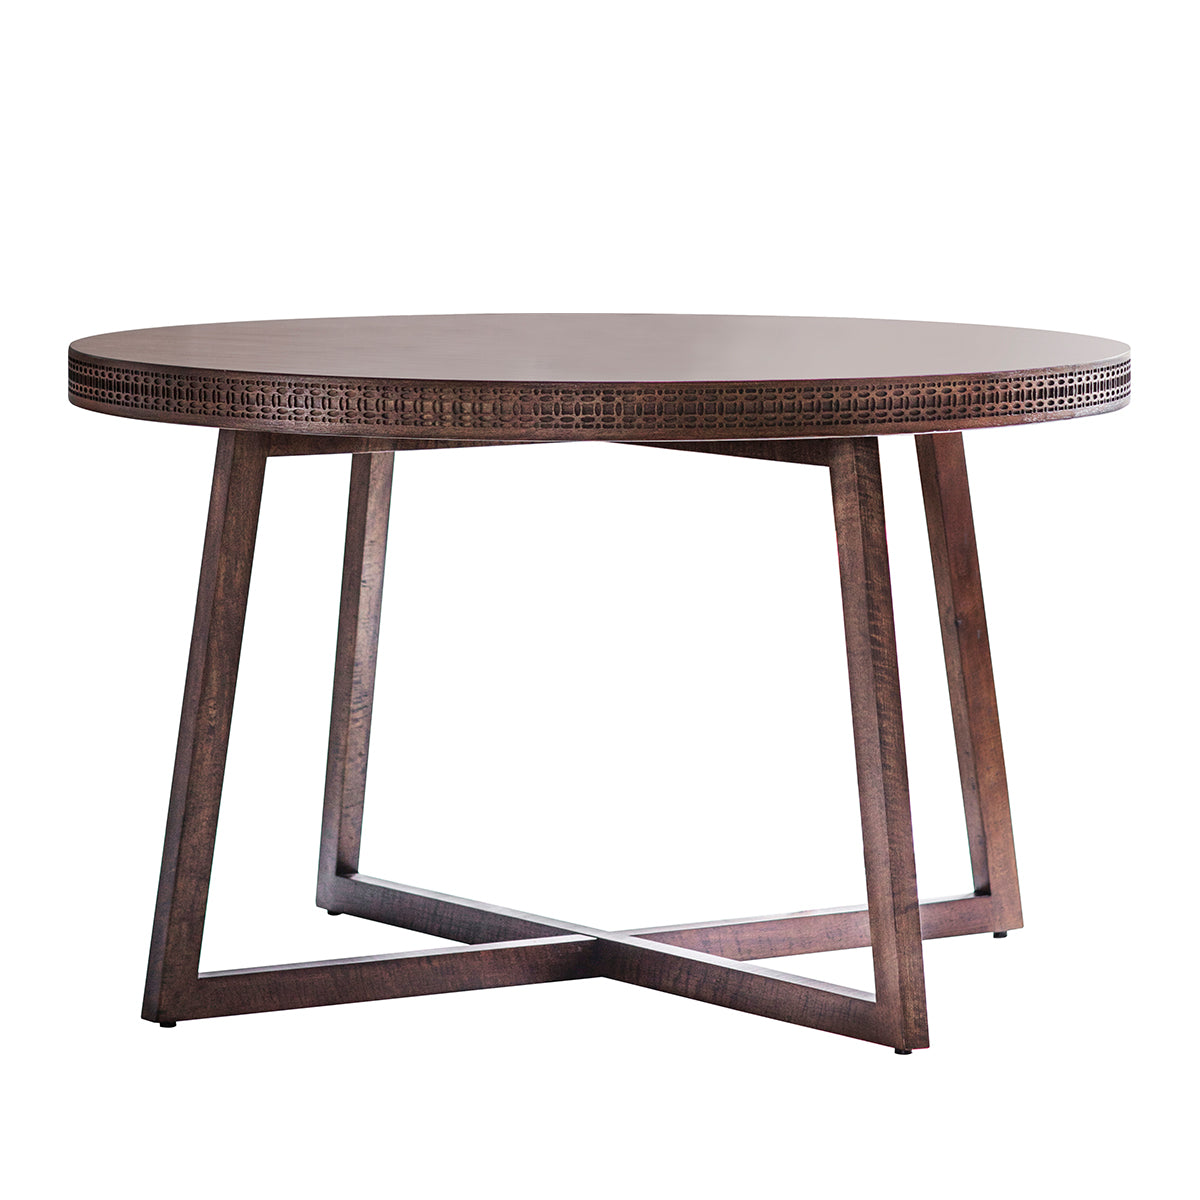 Greenwich Round Dining Table in Natural